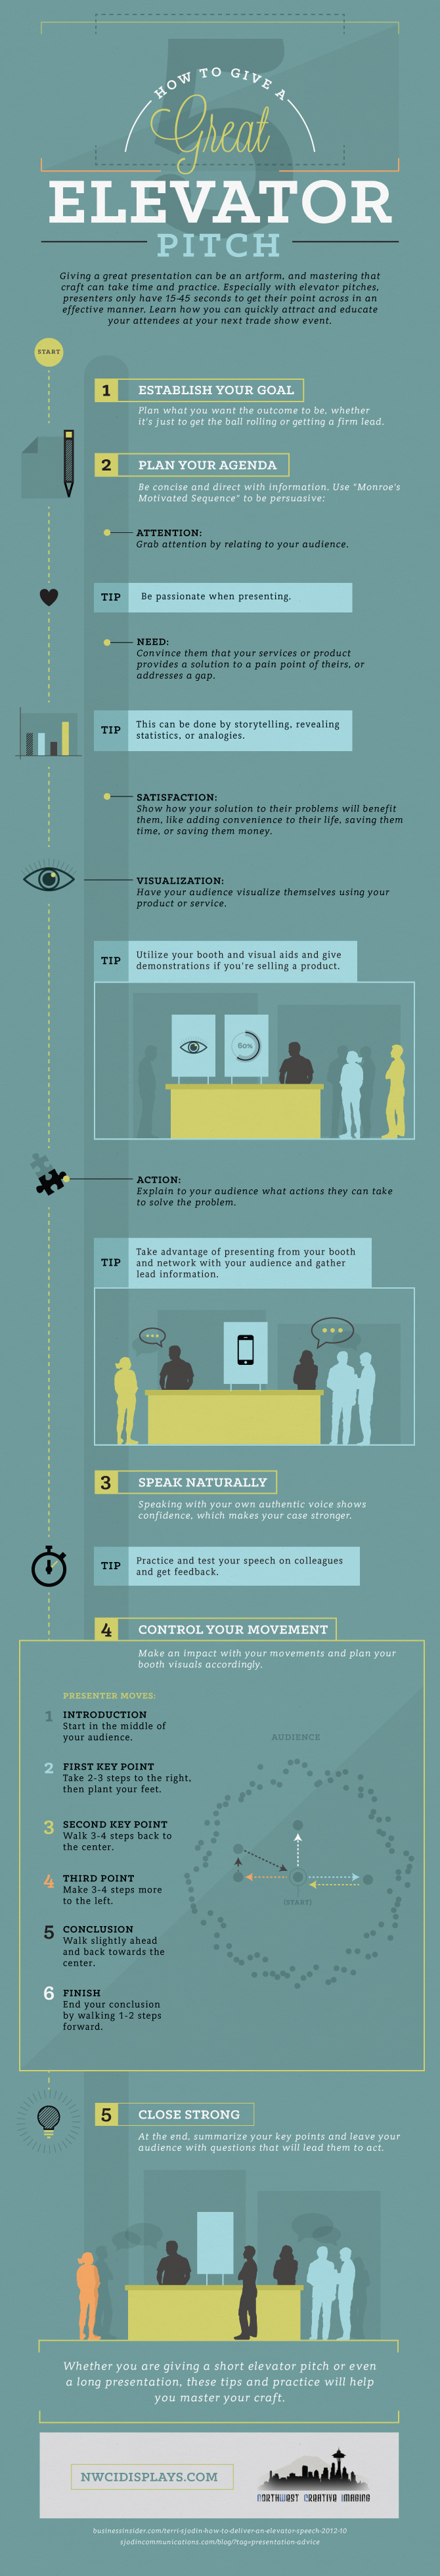 How to Give an Elevator Pitch